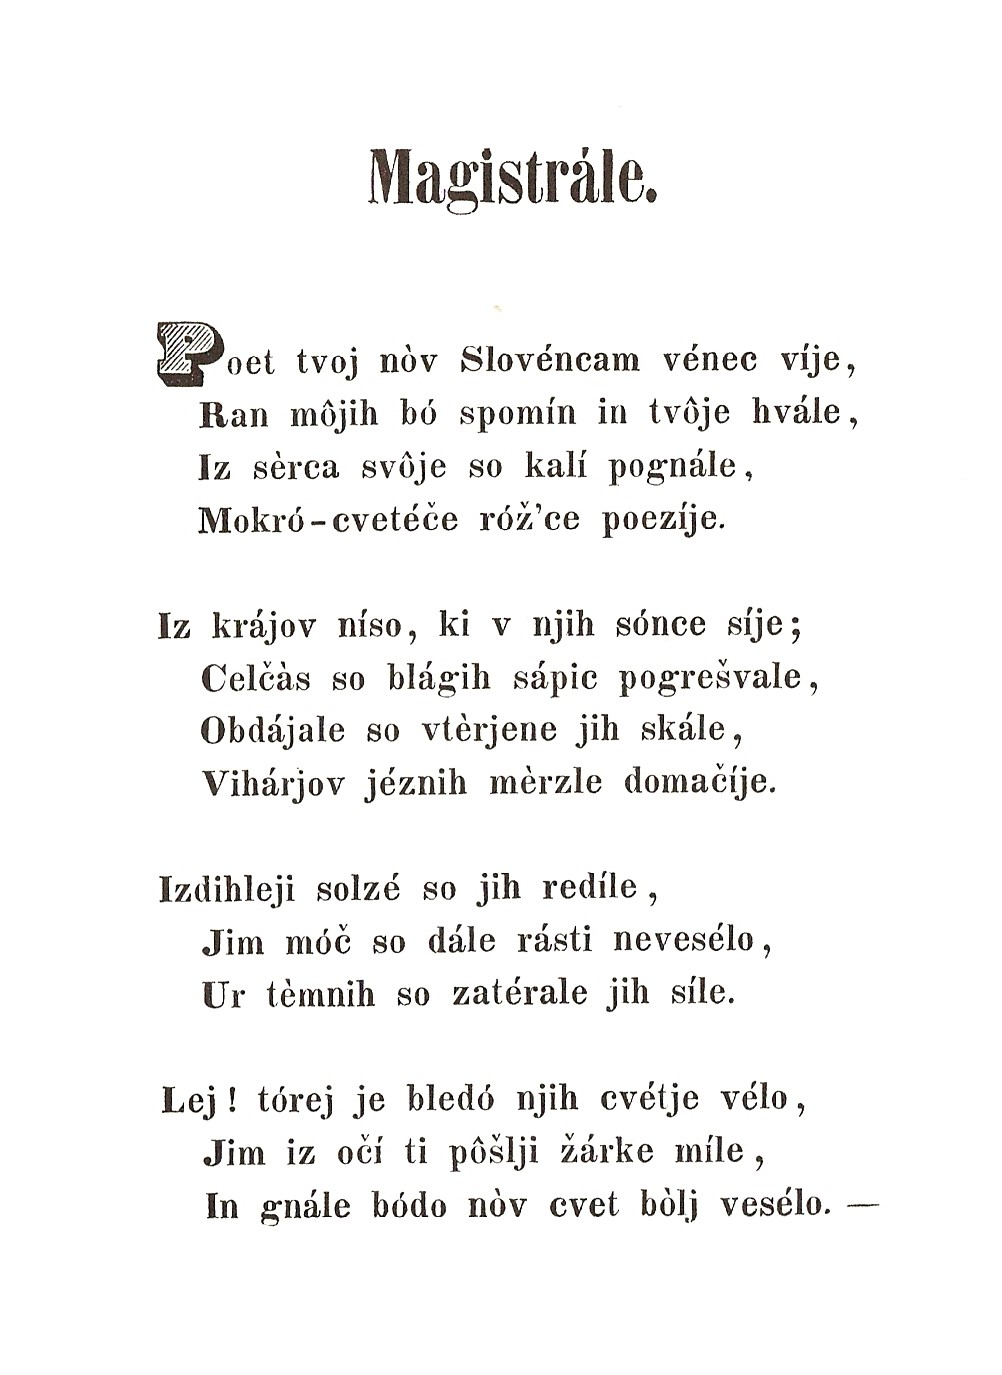 Dedicated to Prešeren's muse, Julija Primic; 'PRIMICOVI JULJI' (To Julija Primic) – a dedication composed of initials of each line (the acrostic). In the present-day Slovenian it would be 'PRIMIČEVI JULIJI'.